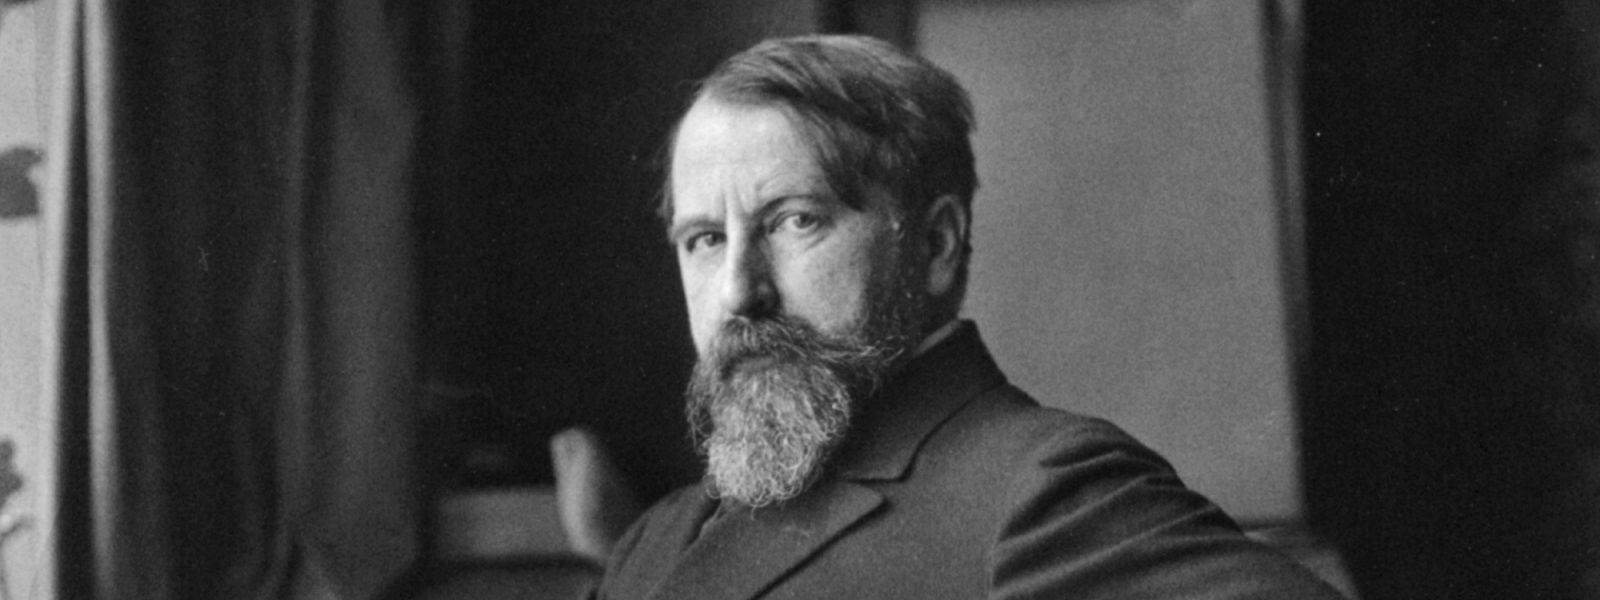 Black and white photograph of Arthur Schnitzler